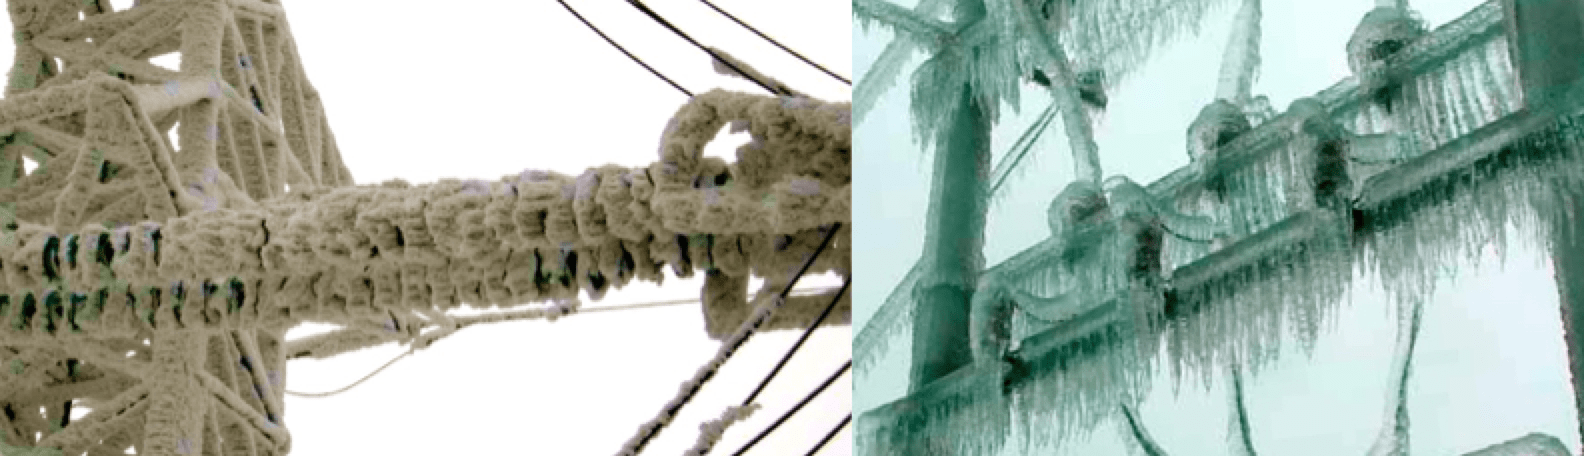 Ice storm across southern China in 2008 triggered massive outages.  insulator Selection of Insulators with Respect to Icing Screen Shot 2016 10 28 at 13